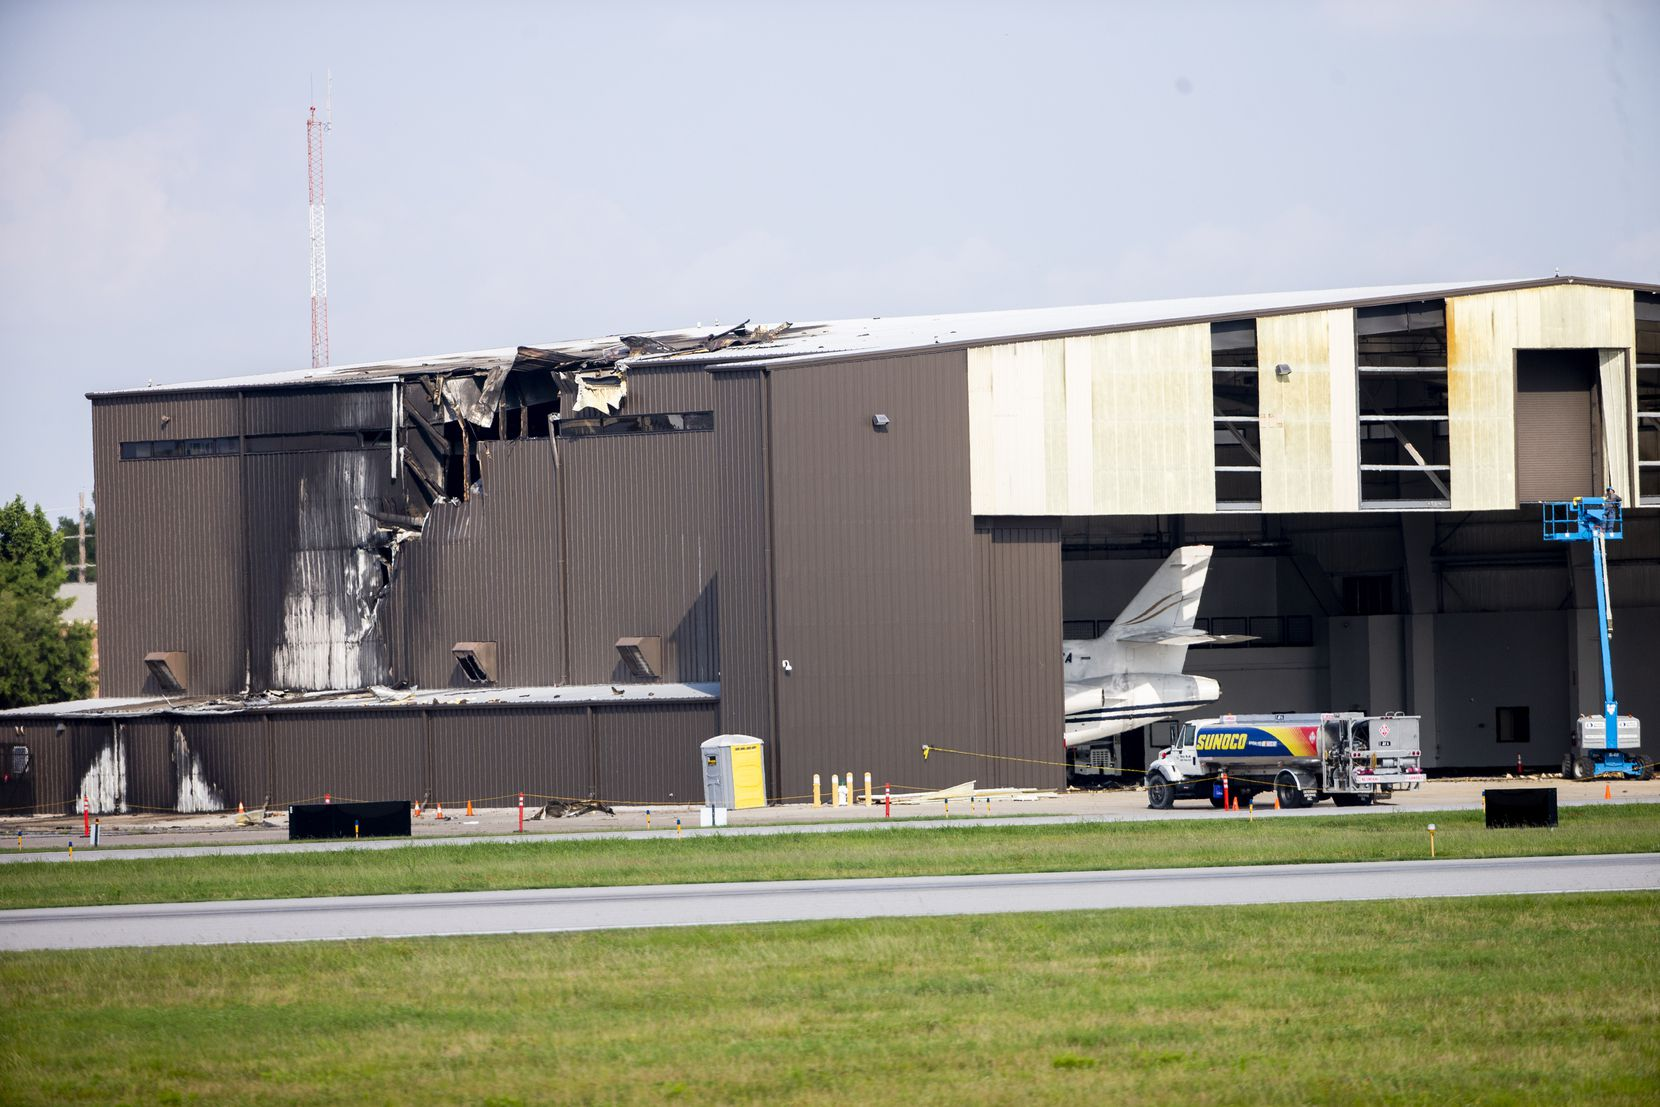 The Beechcraft Super King Air 350 crashed into a hangar at Addison Airport on June 30, 2019.